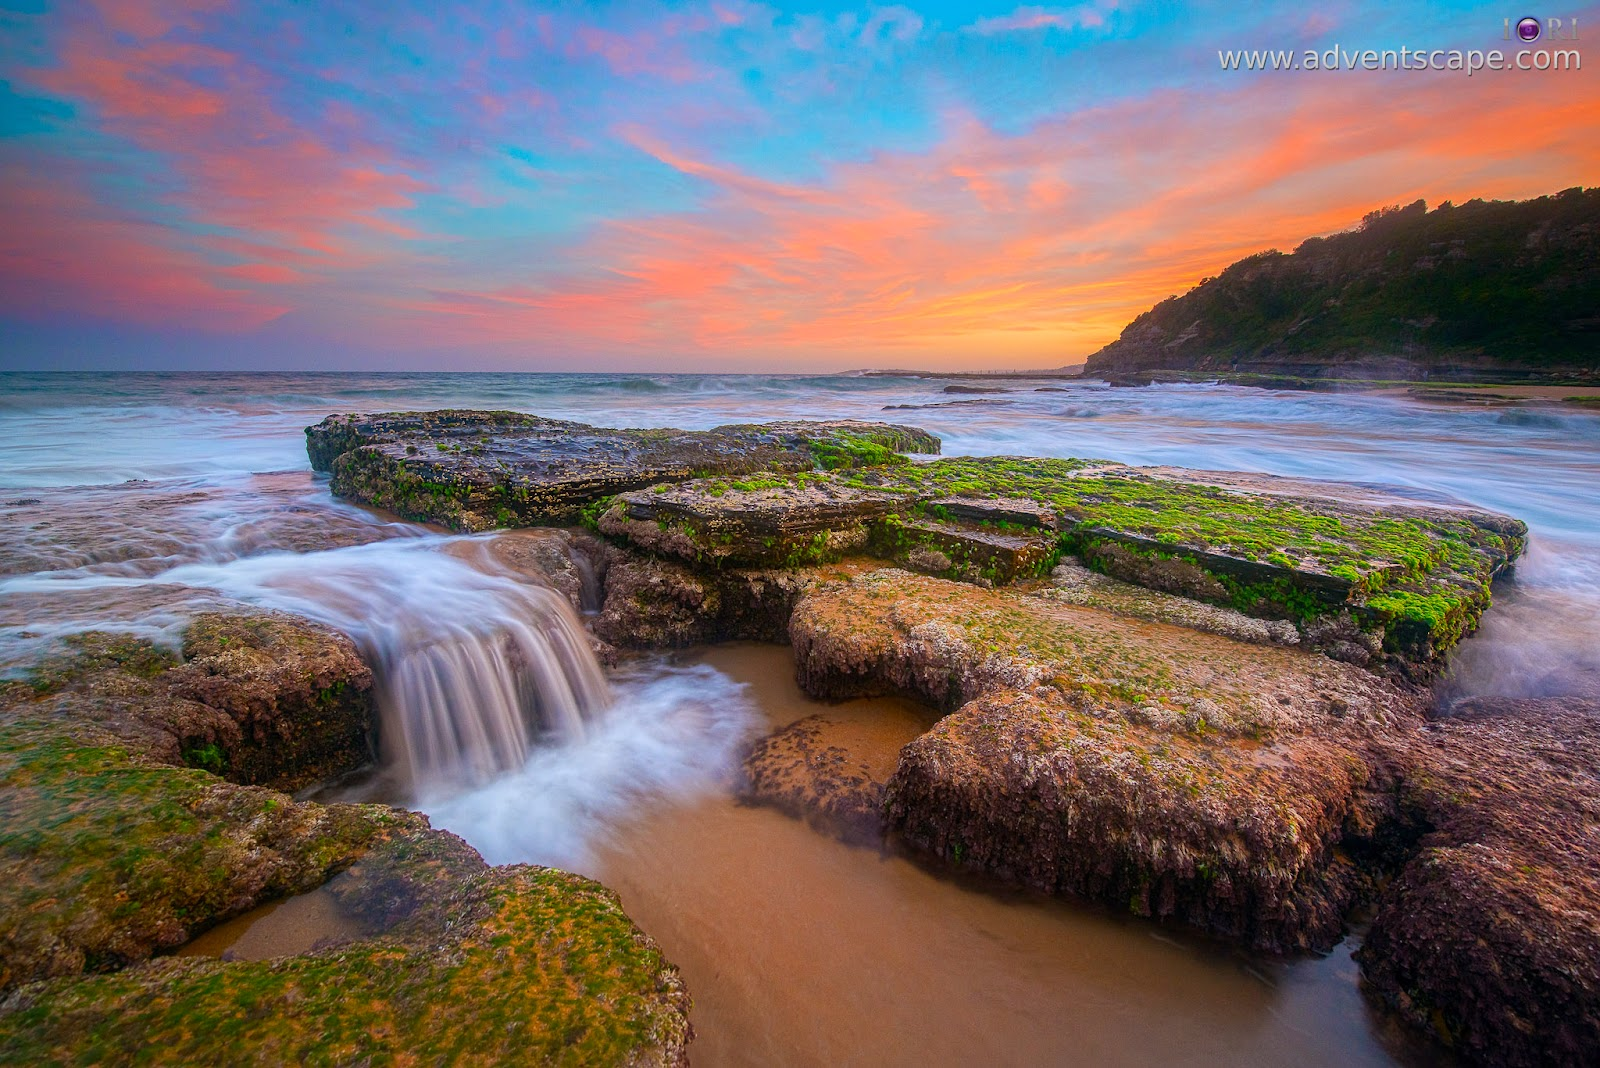 Australia, landscape, lee filter, Narrabeen, Narrabeen Head, New South Whales, Northern Beaches, NSW, Philip Avellana, seascape, sunset, Turimetta Beach, adventscape, Philip Avellana, Australia Landscape Photographer, waterfall